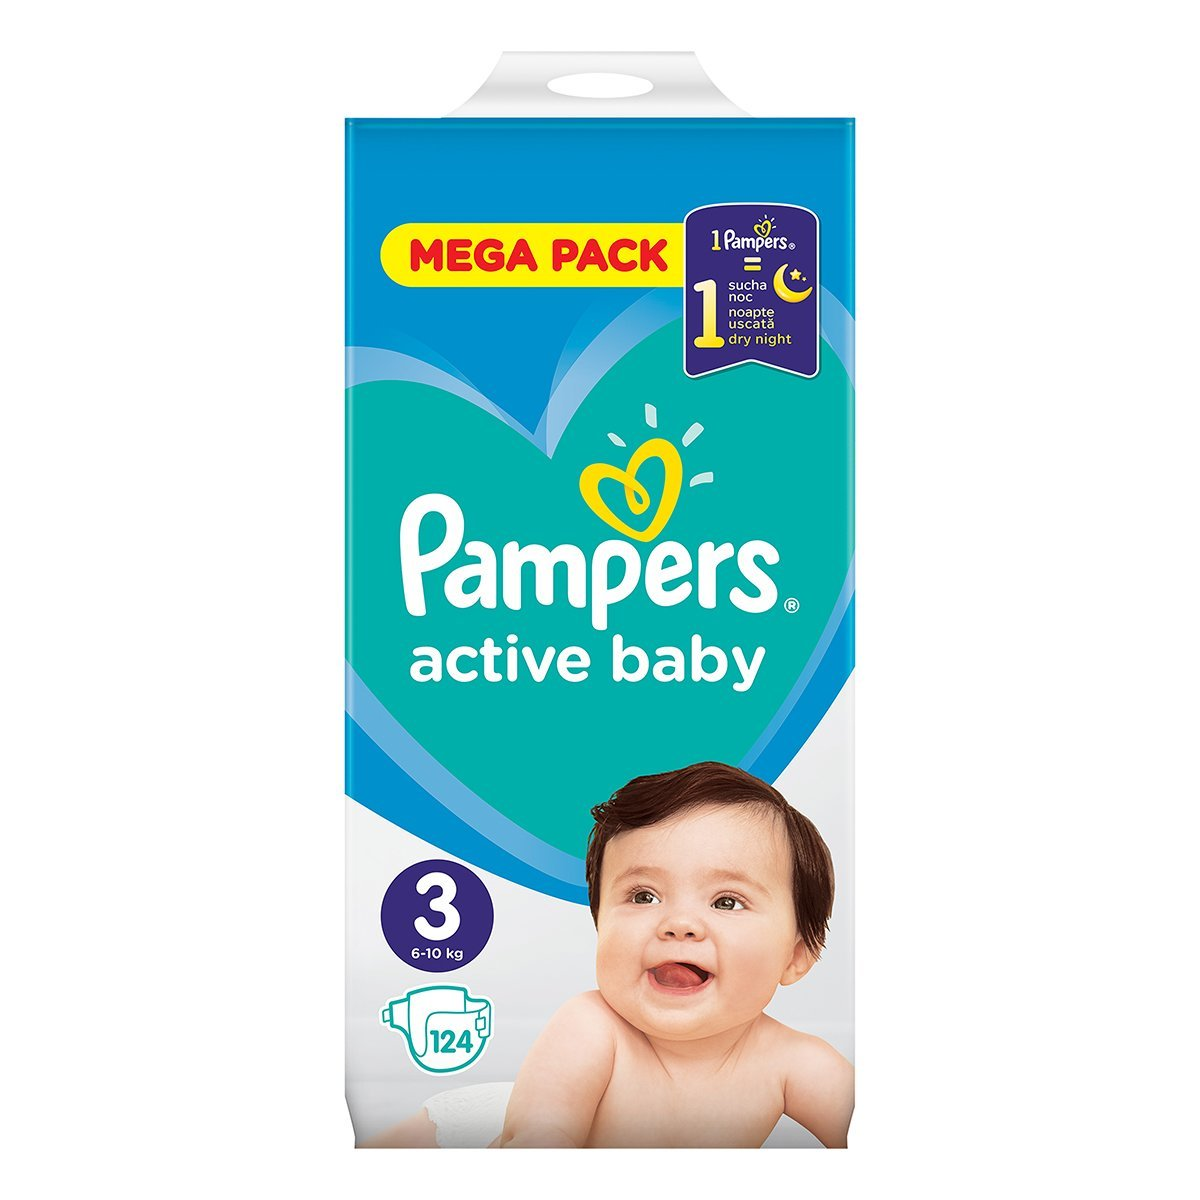 4897dbdd8298 Pampers Подгузники Pampers Active Baby Размер 3 6-10 кг, 124 шт ТМ  Pamper